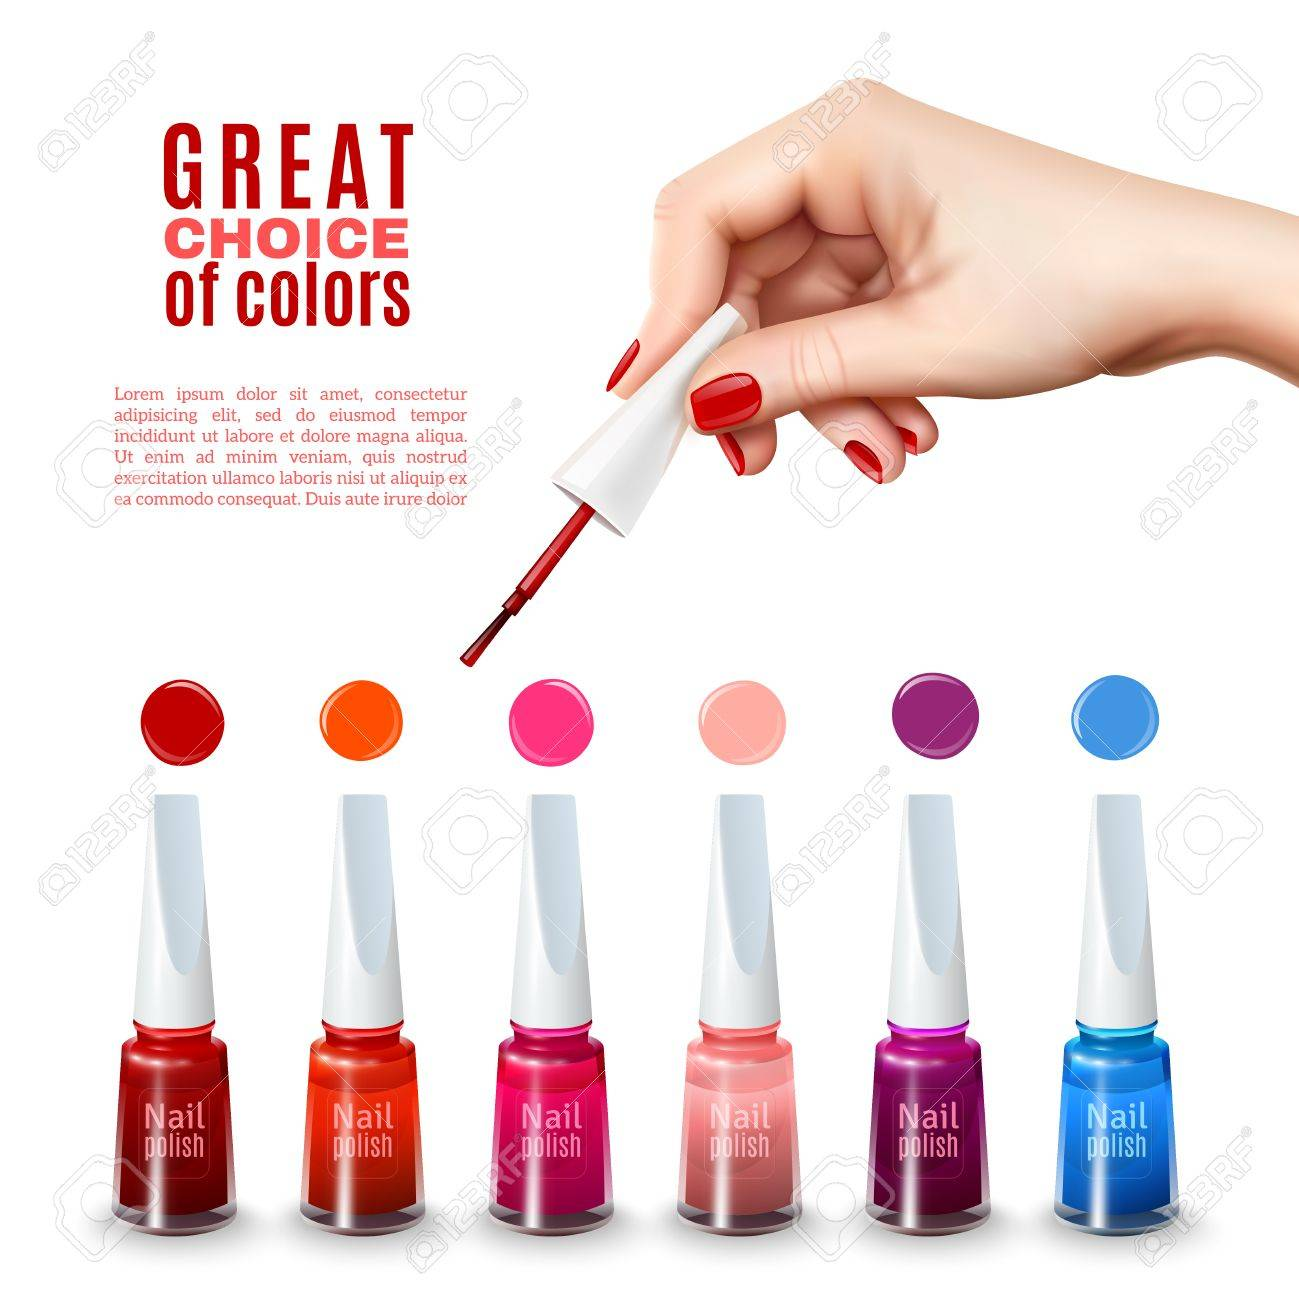 Best Choice Of New Tints Nail Polish Colors With Beautiful Hand ...